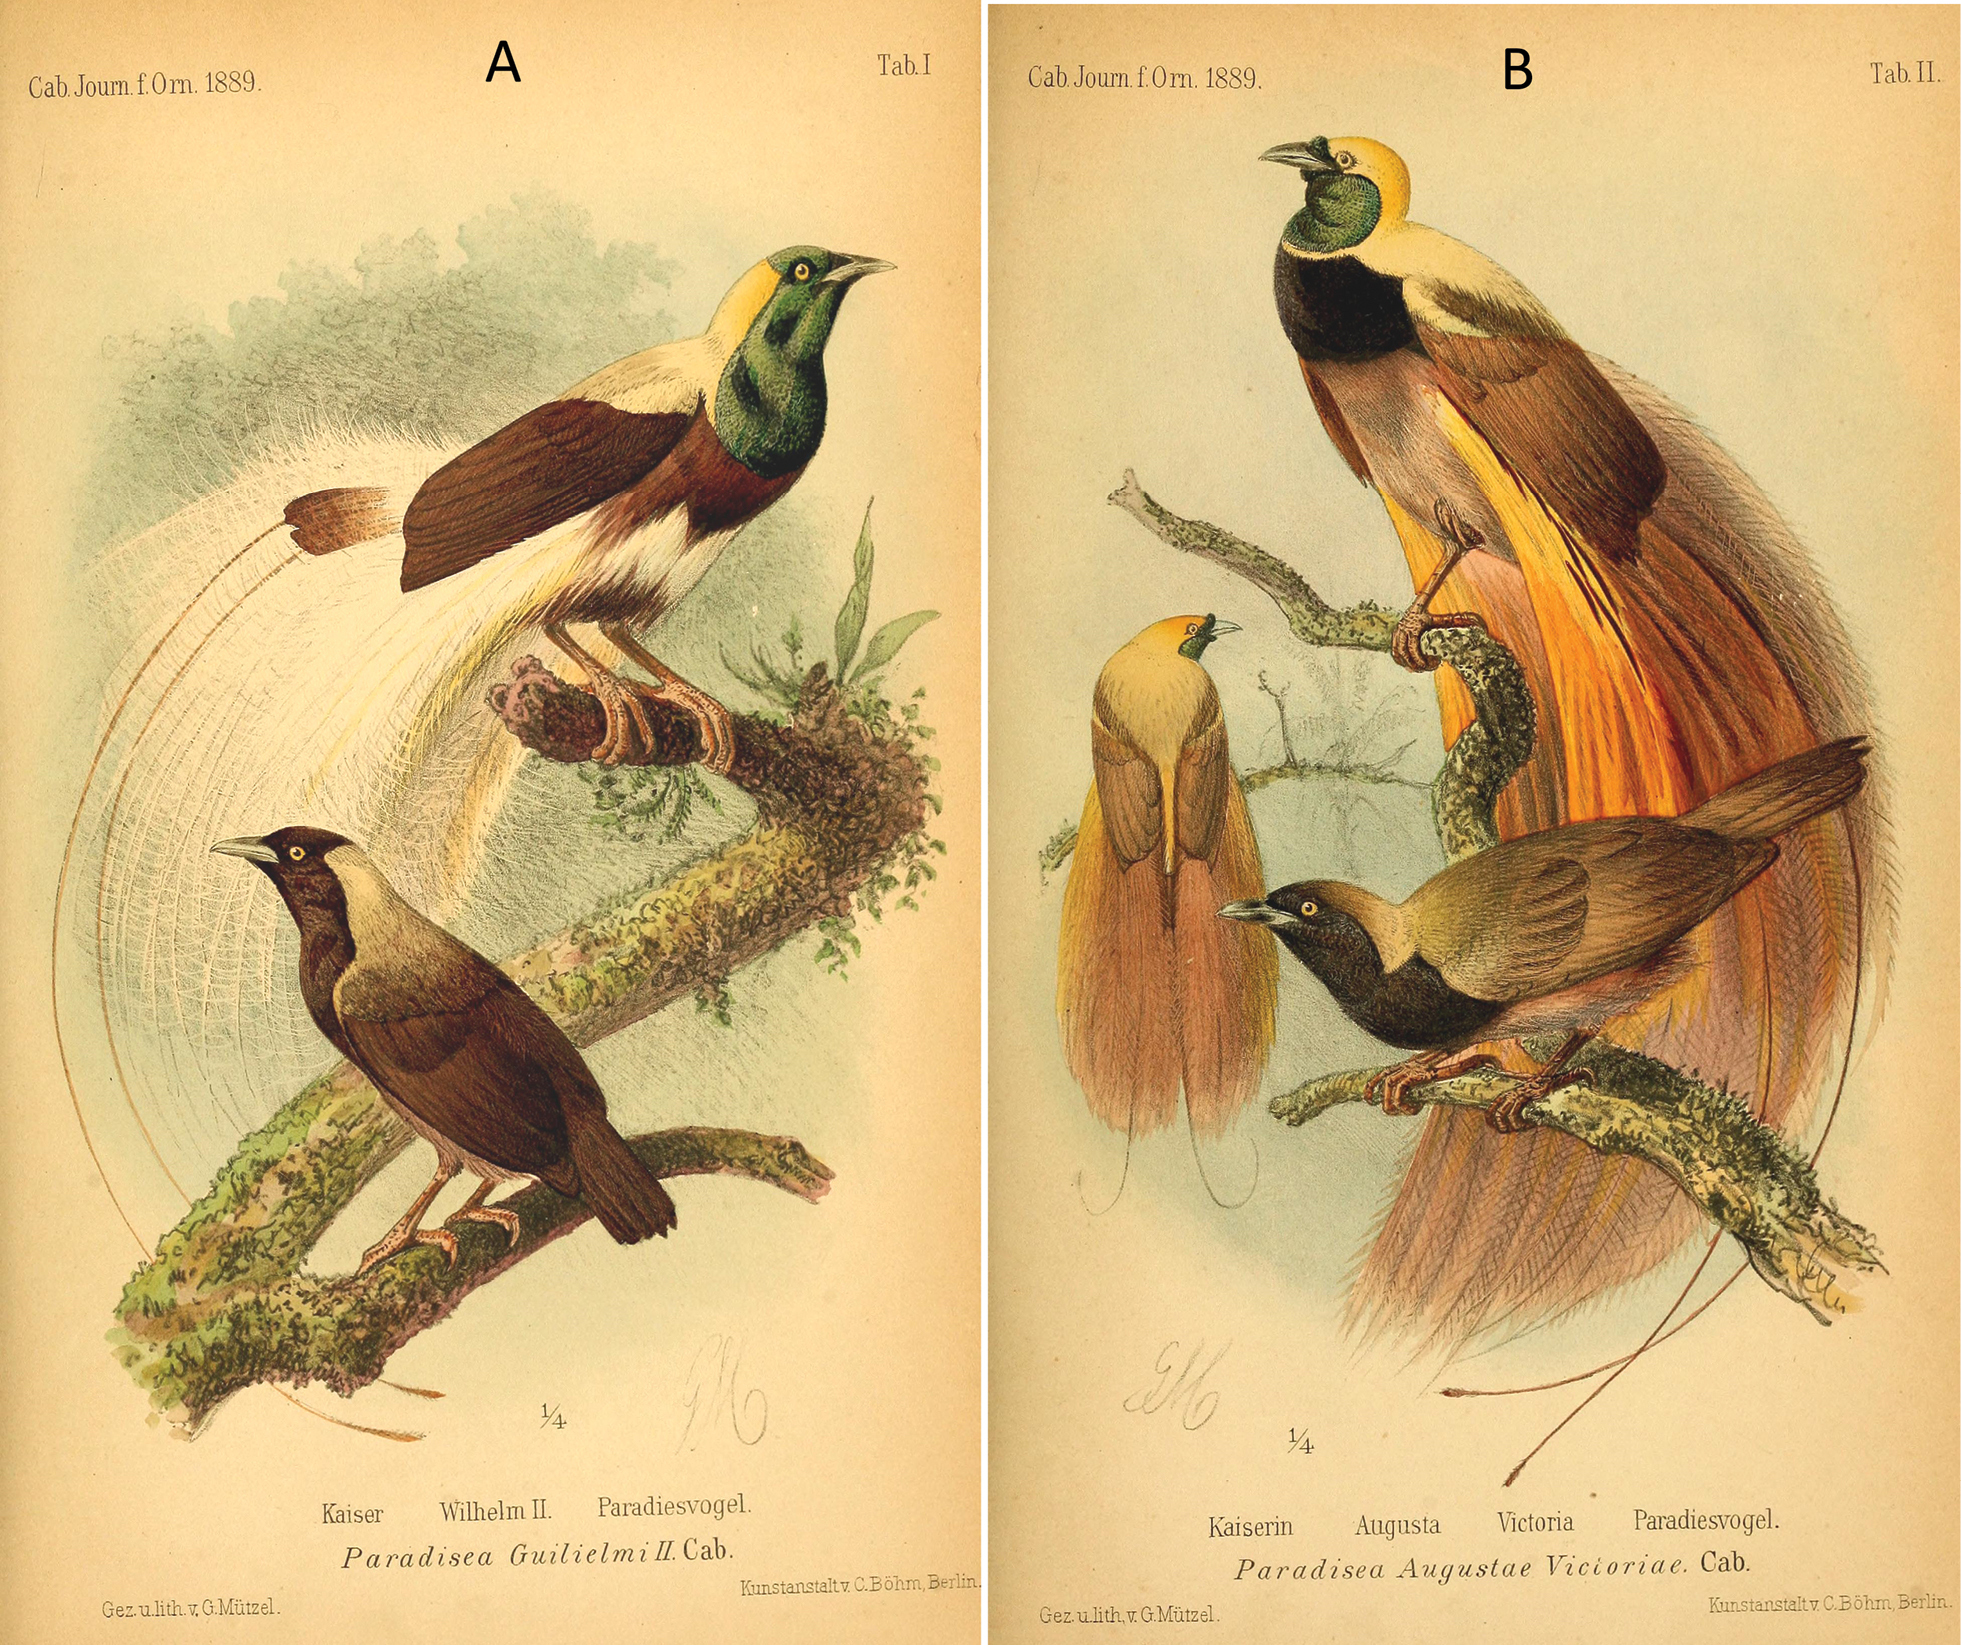 Discovery of a rare hybrid specimen known as Maria's bird of